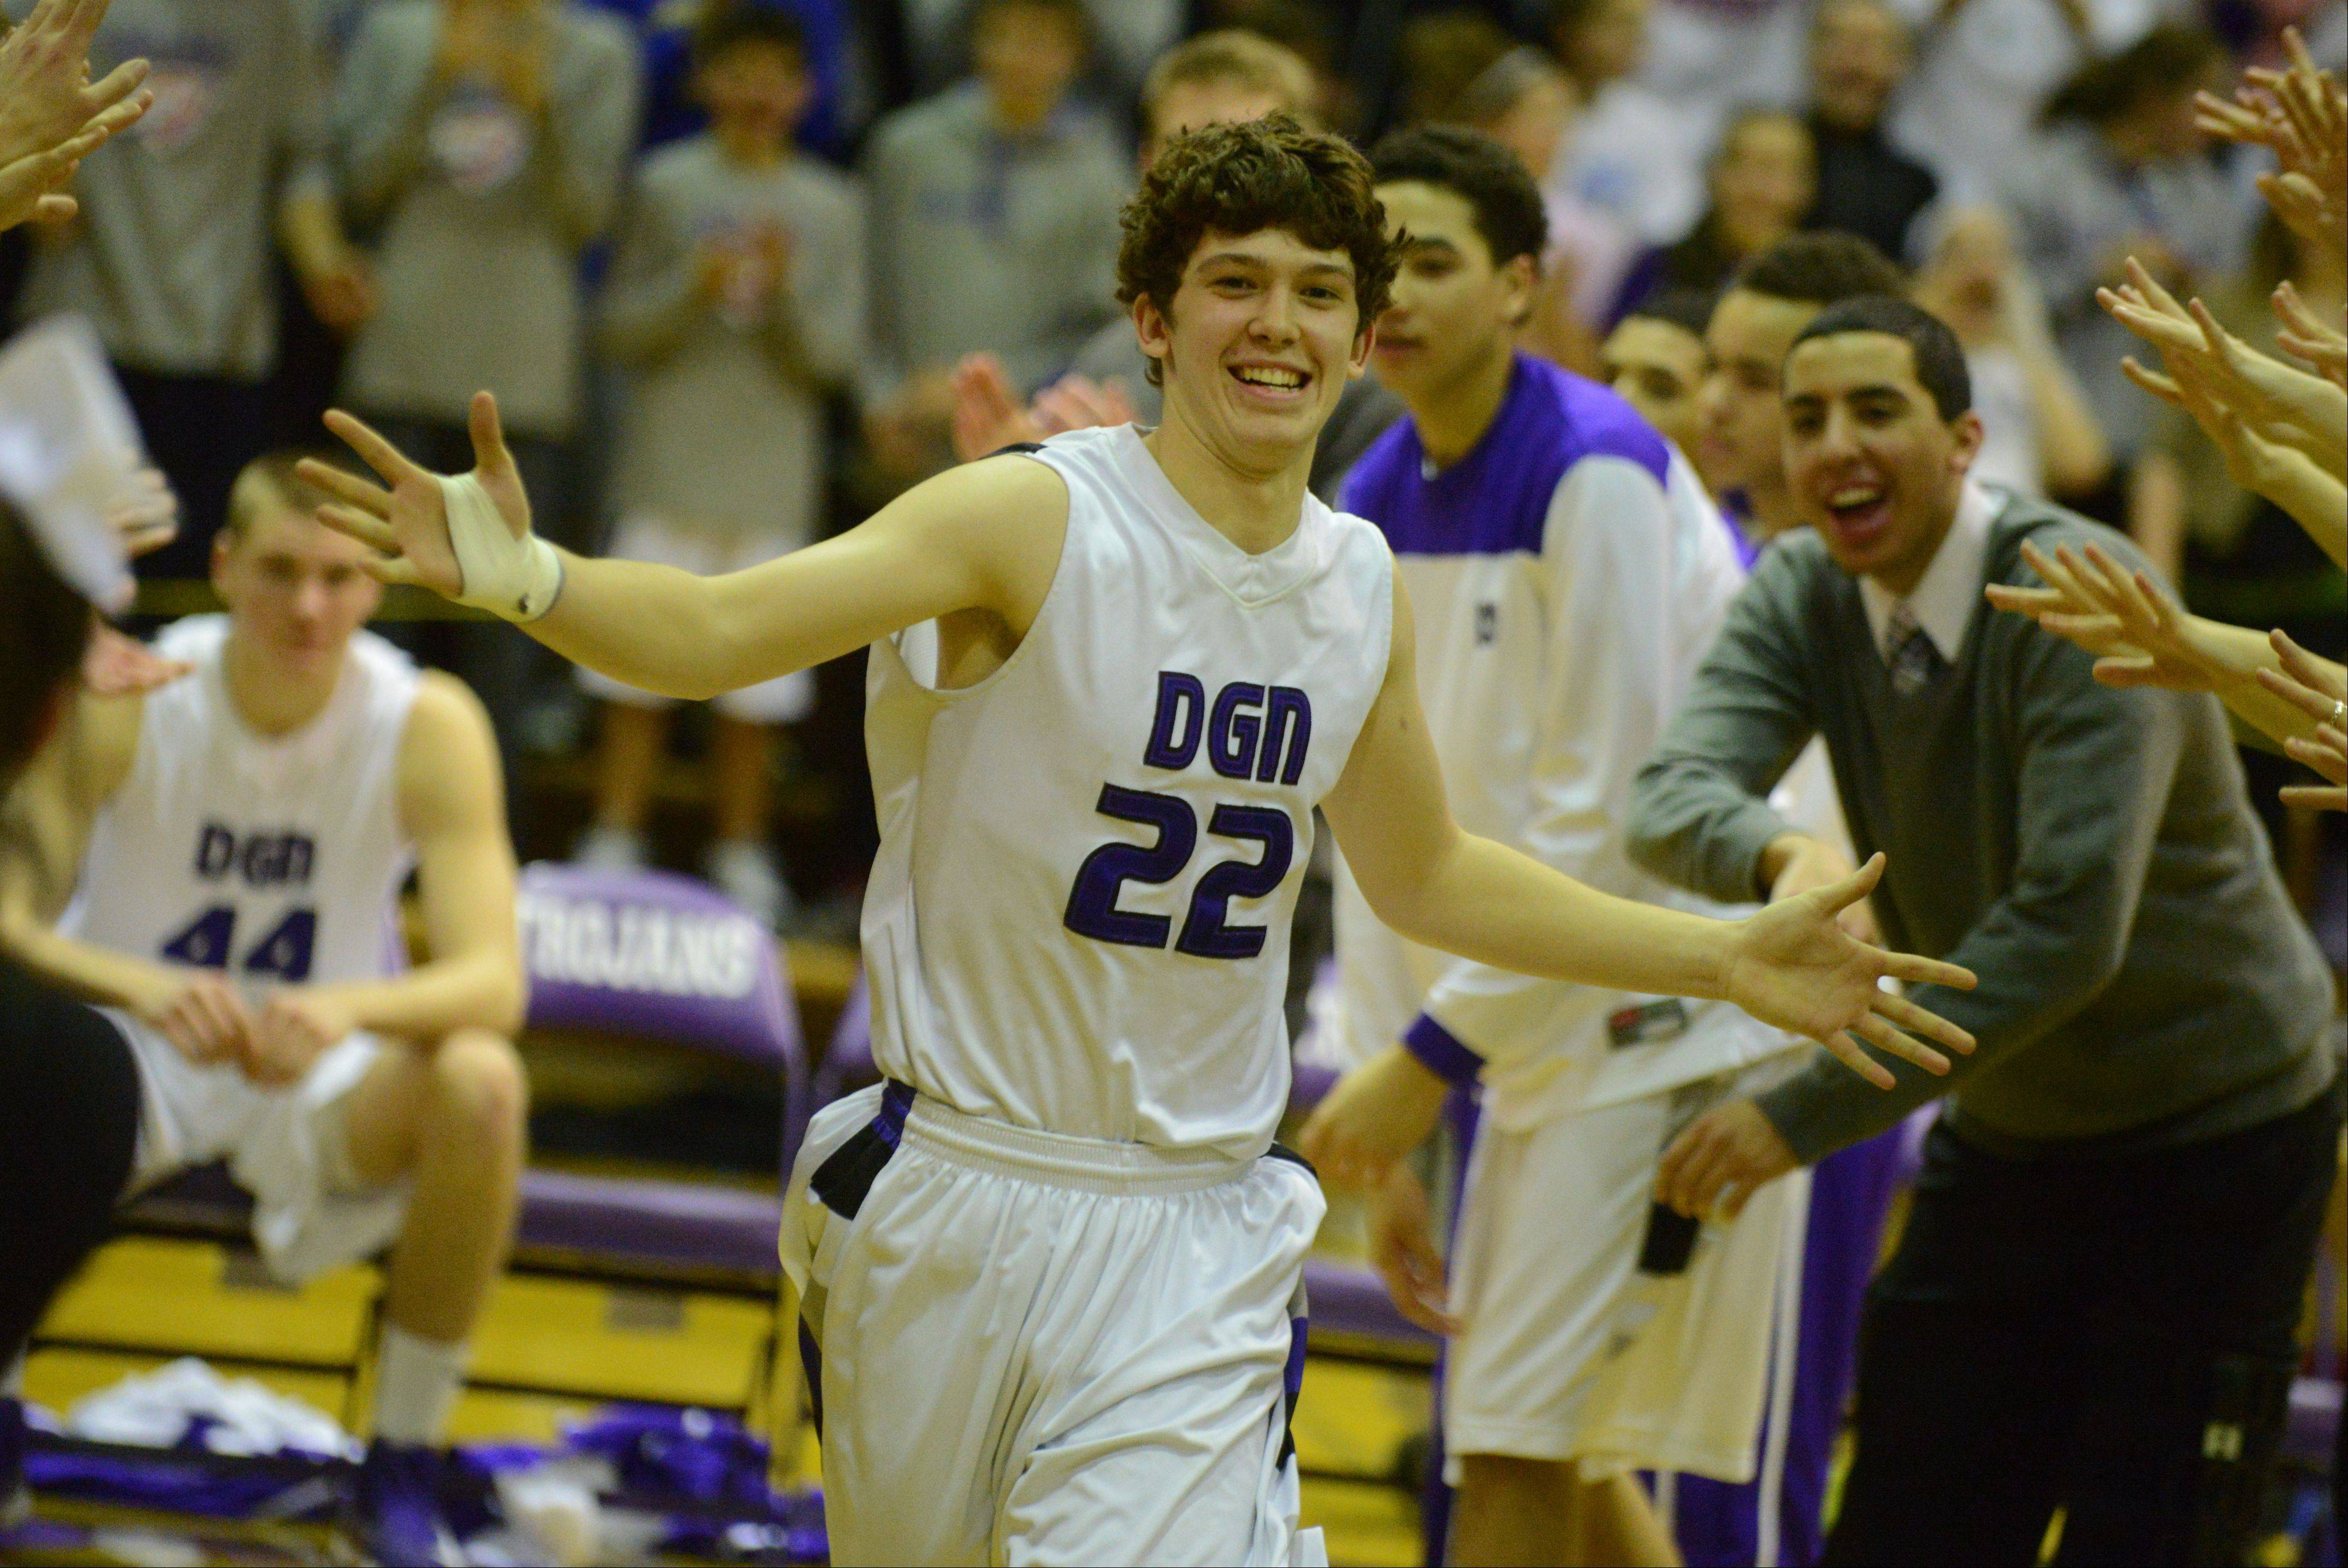 Images from the Montini vs. Downers Grove North boys basketball game on Wednesday, Jan. 16, 2013.